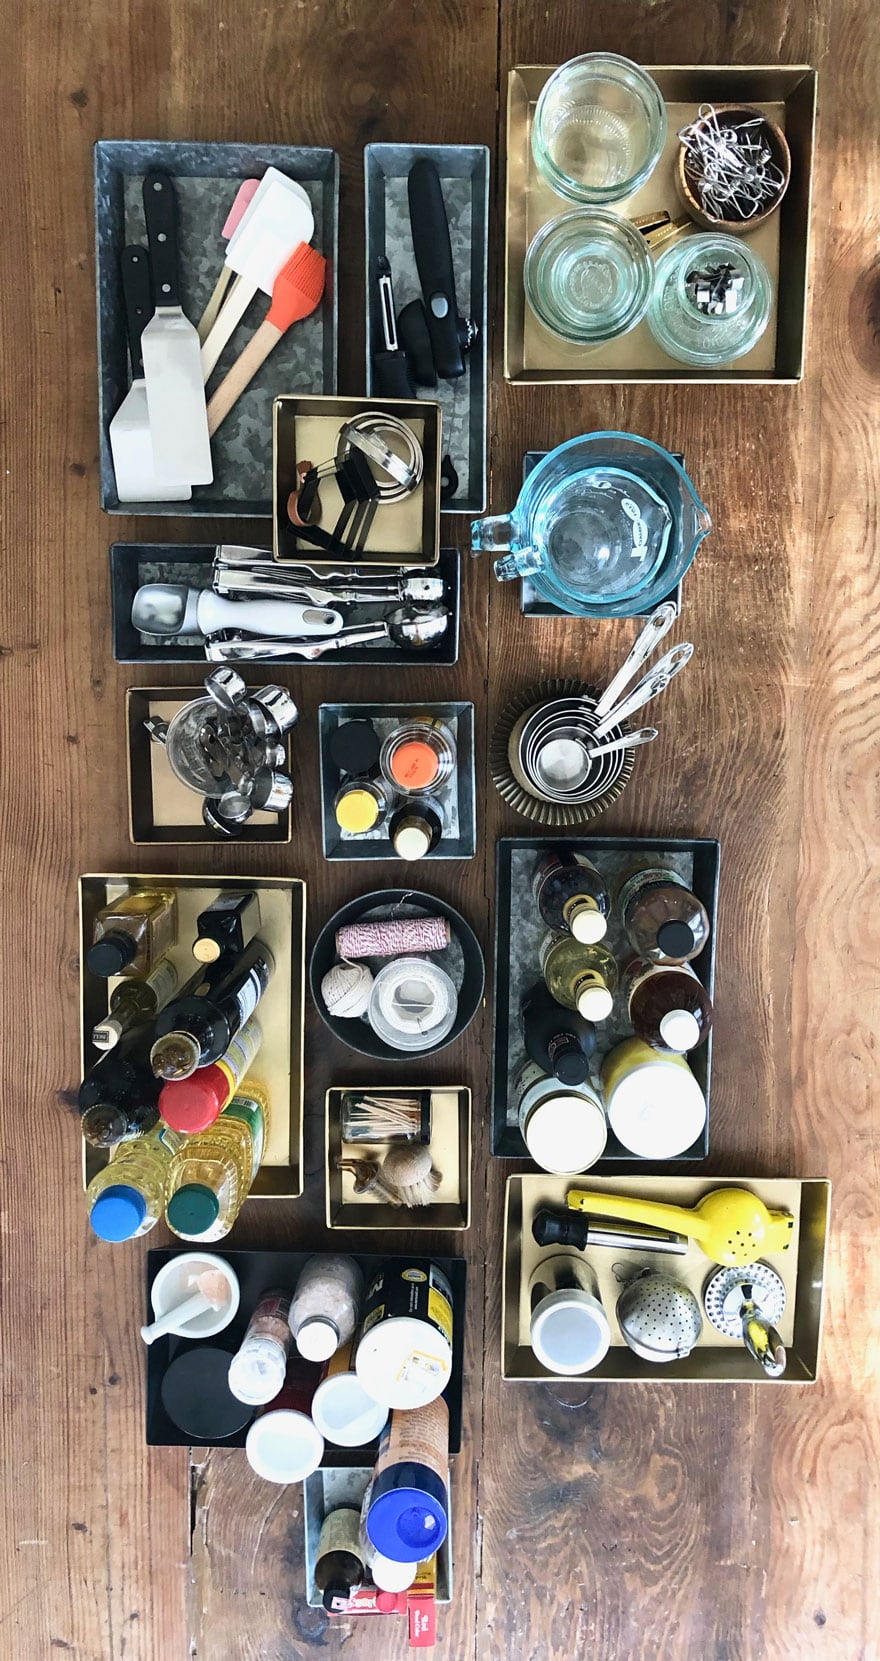 kitchen tools and products organized in trays